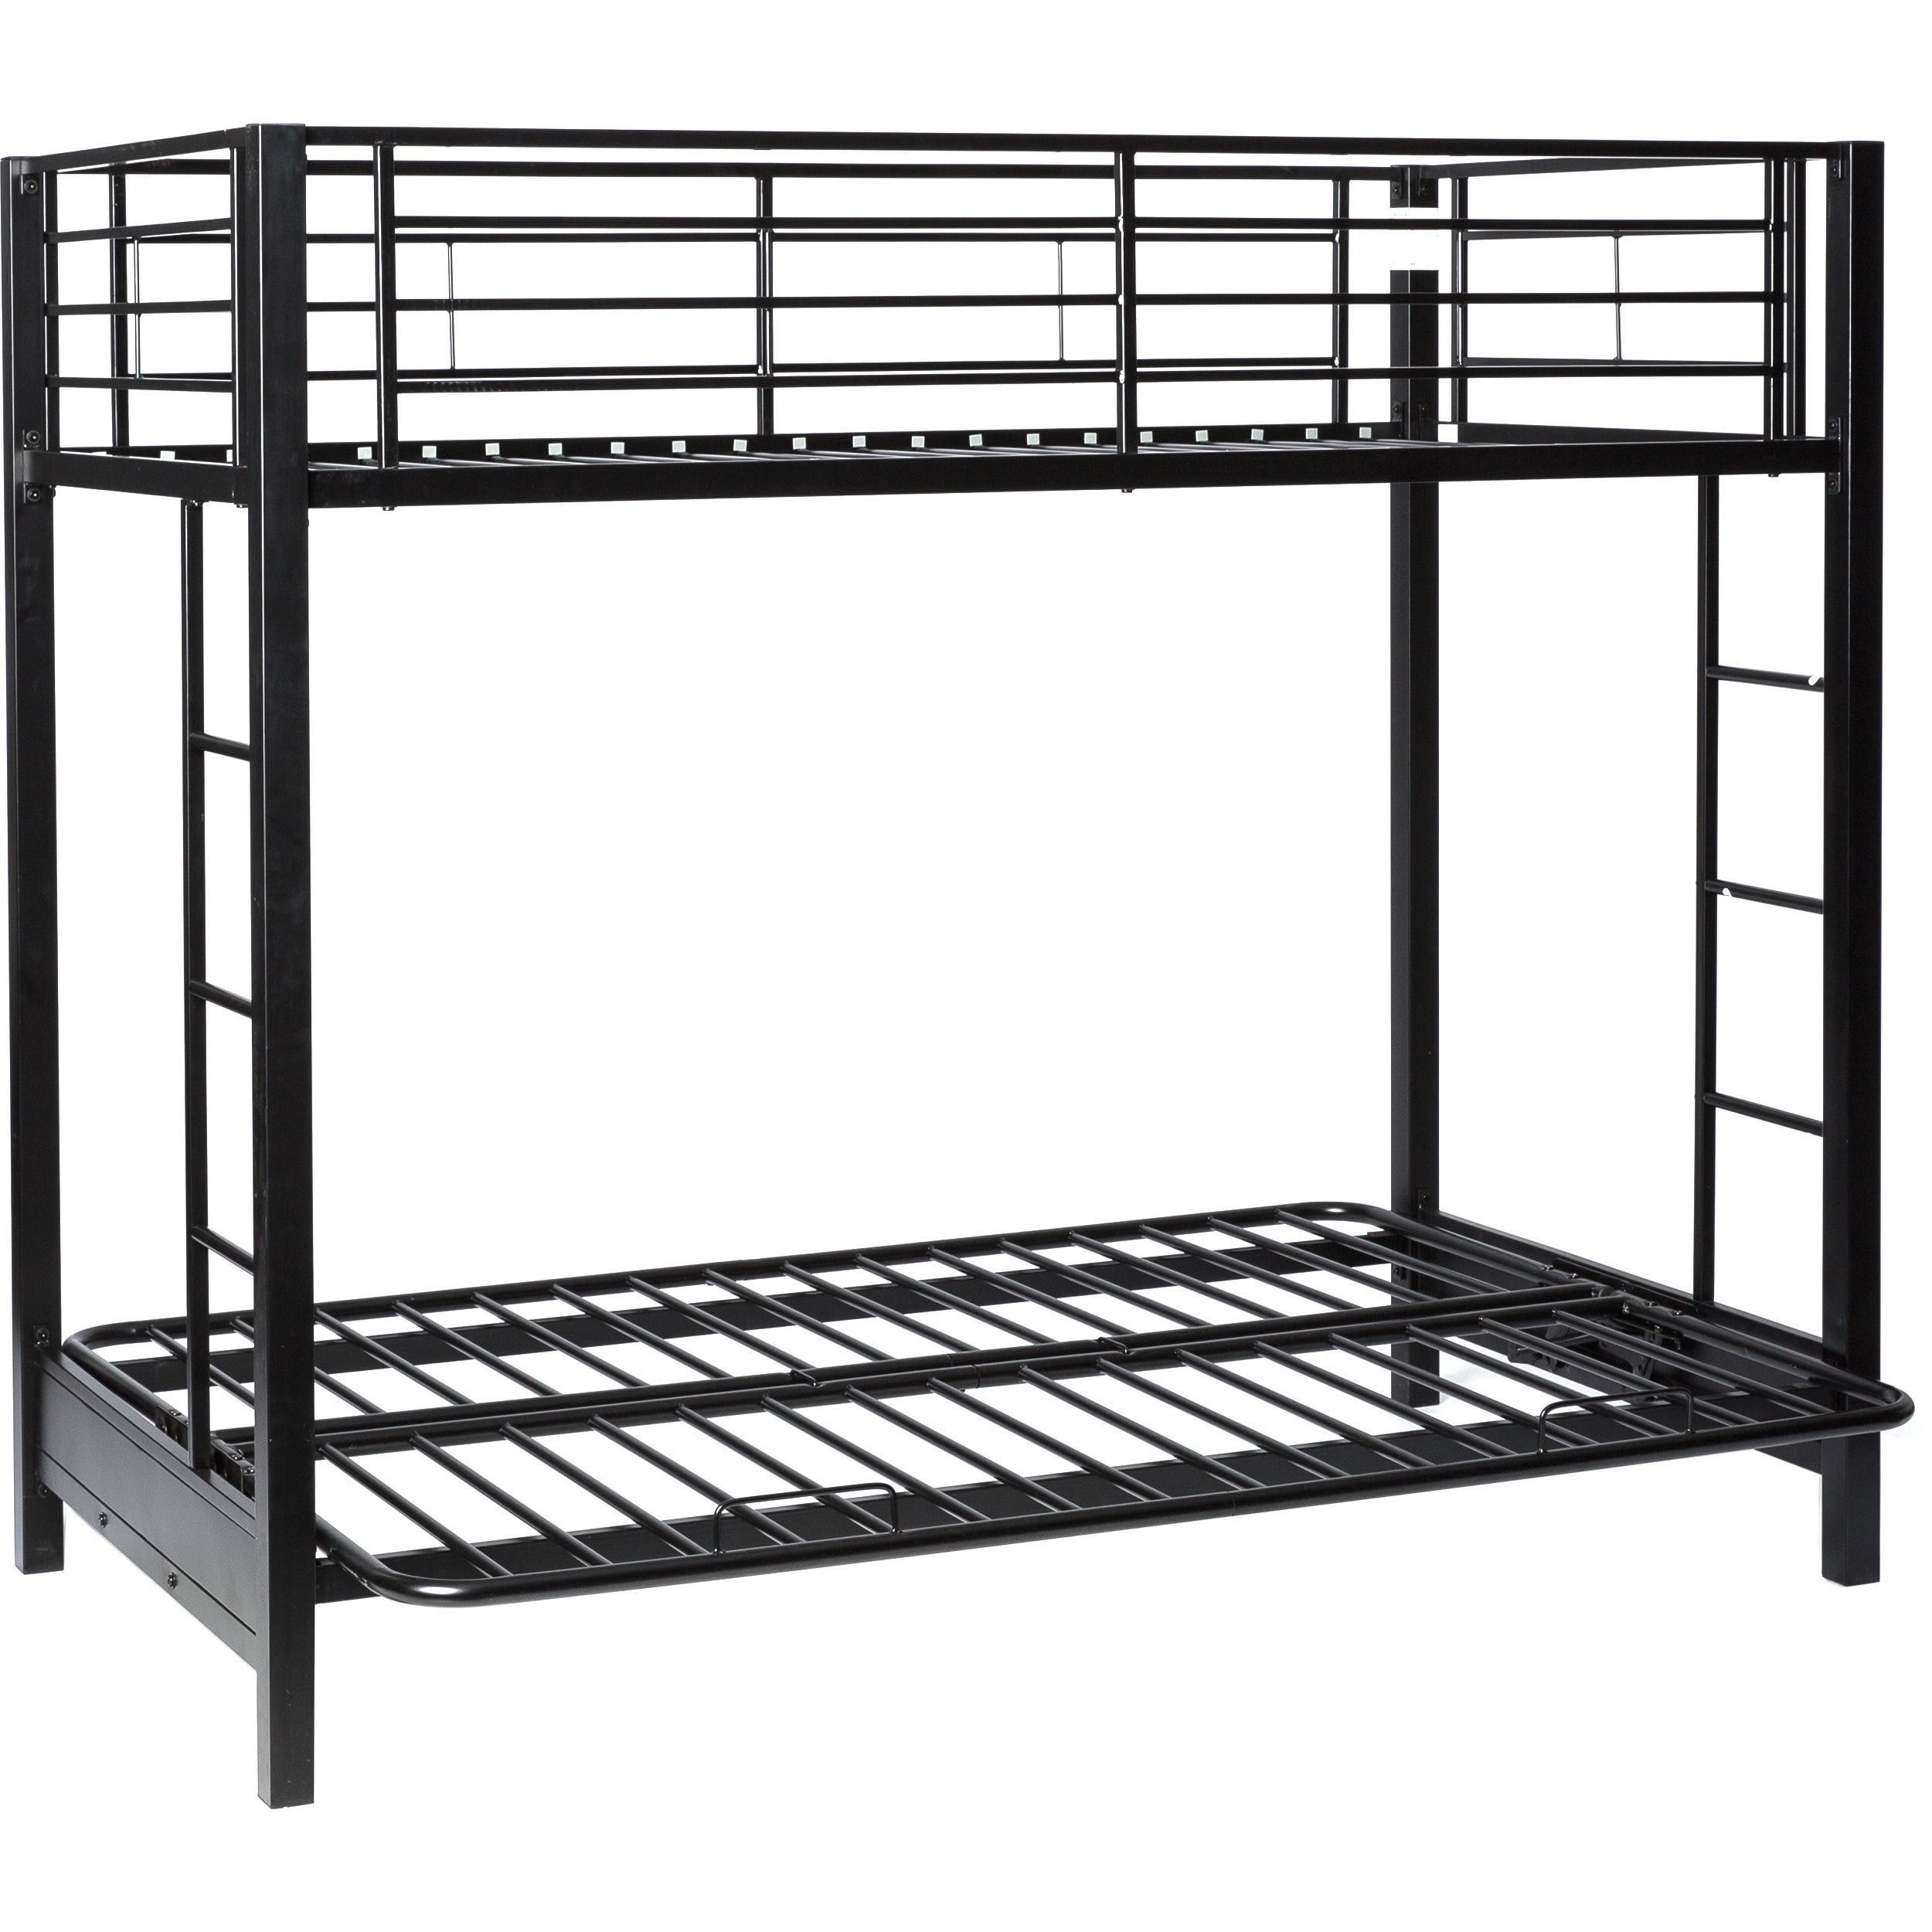 modern black metal twin bunk bed with futon   free shipping today   overstock     12021639 modern black metal twin bunk bed with futon   free shipping today      rh   overstock